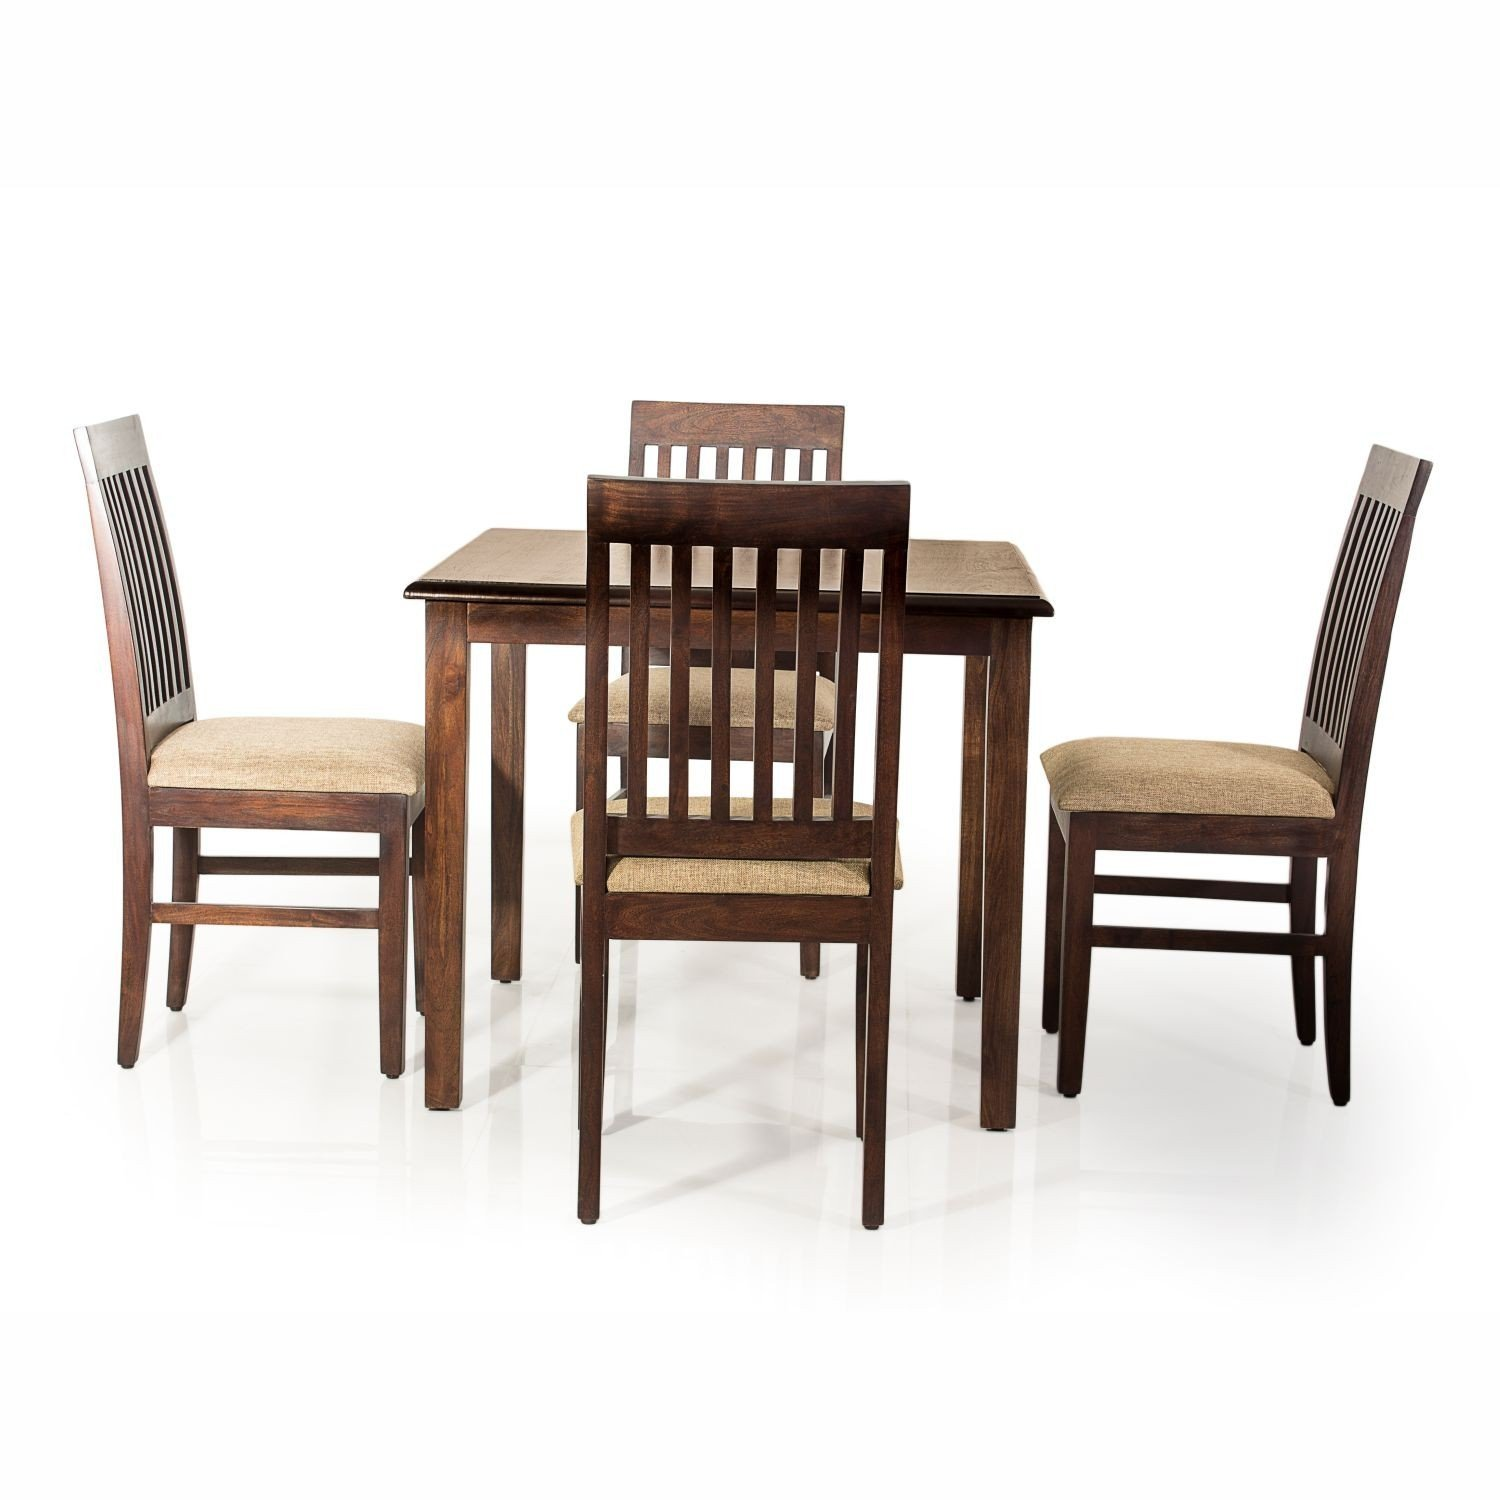 d0fefac1ee Evok Riva Solidwood Four Seater Dining Set: Amazon.in: Home & Kitchen